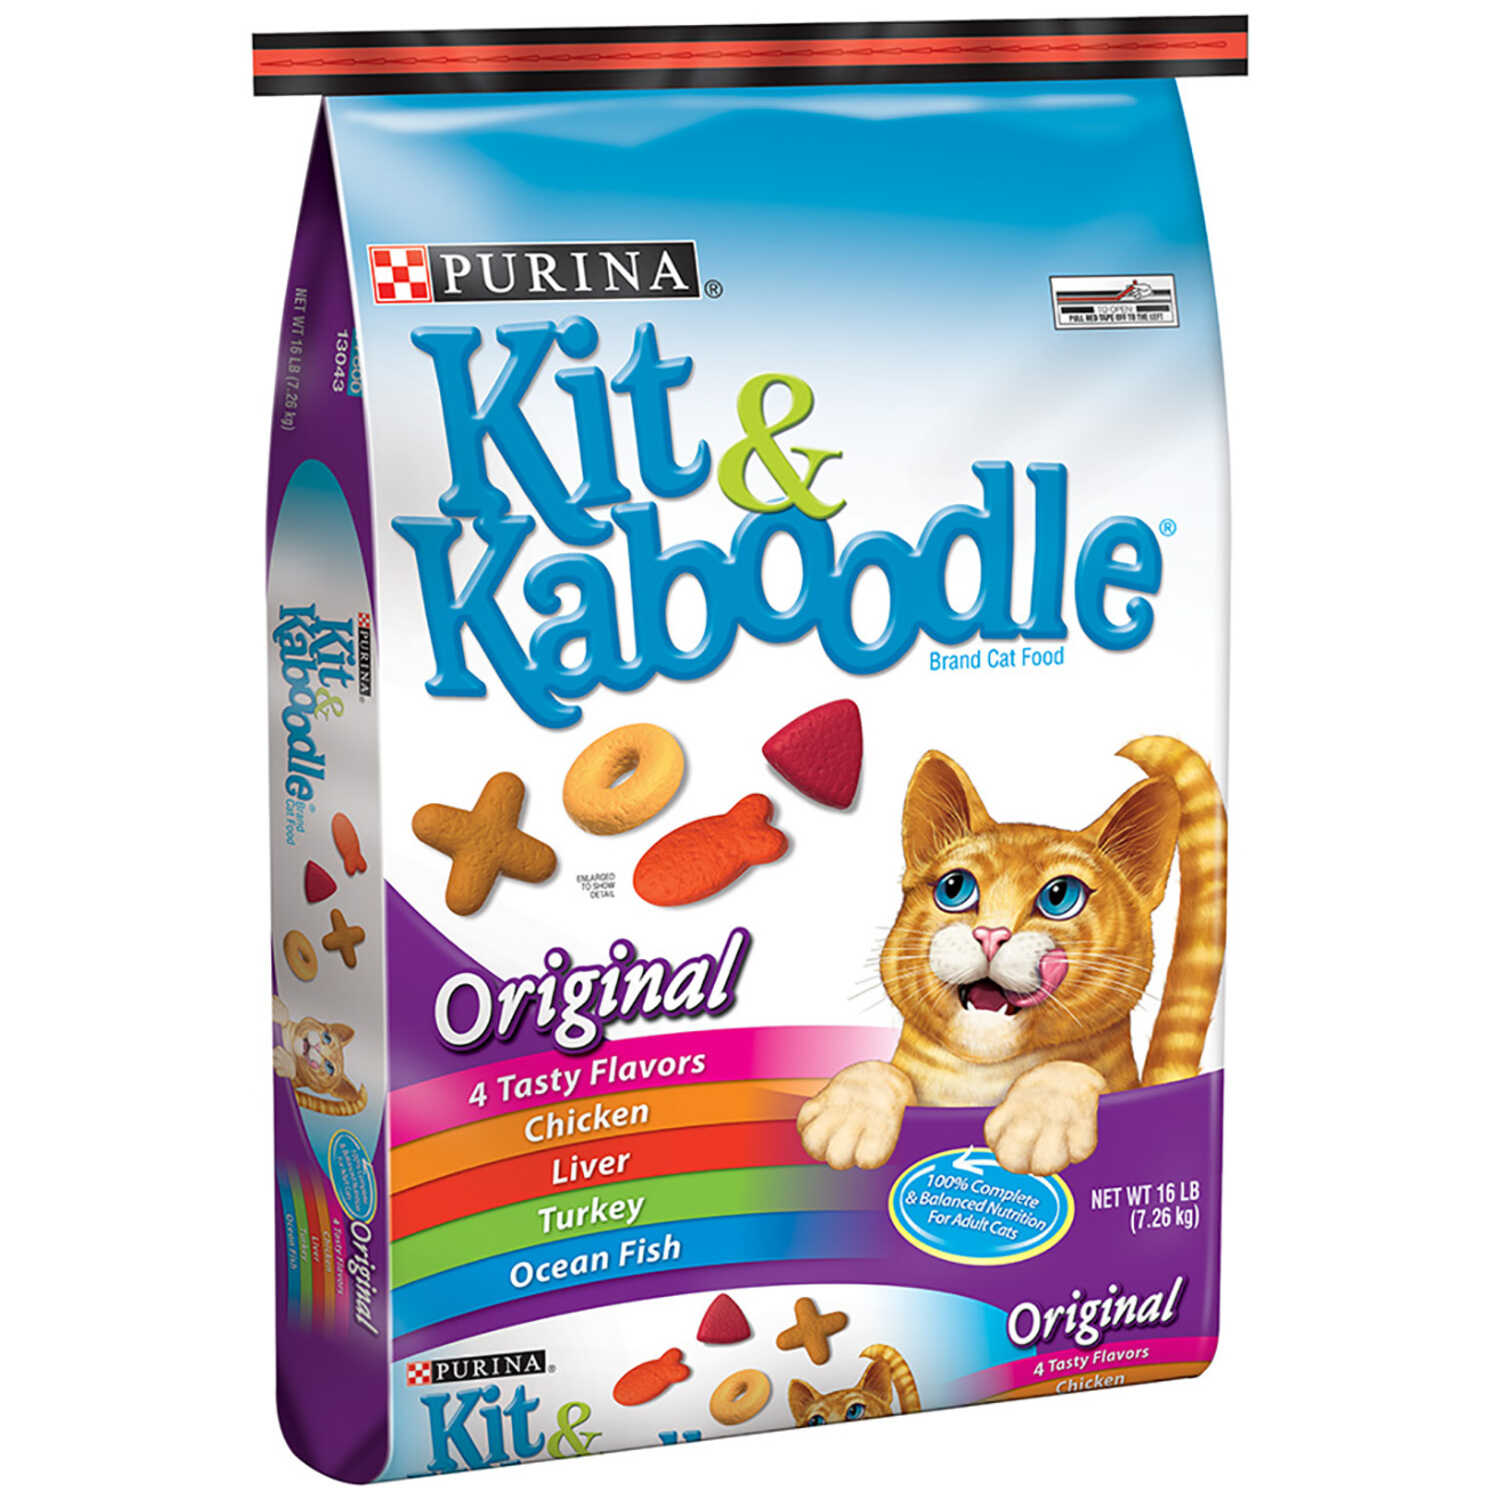 Purina Kit & Kaboodle Original Blend of great flavors Dry Cat Food ...